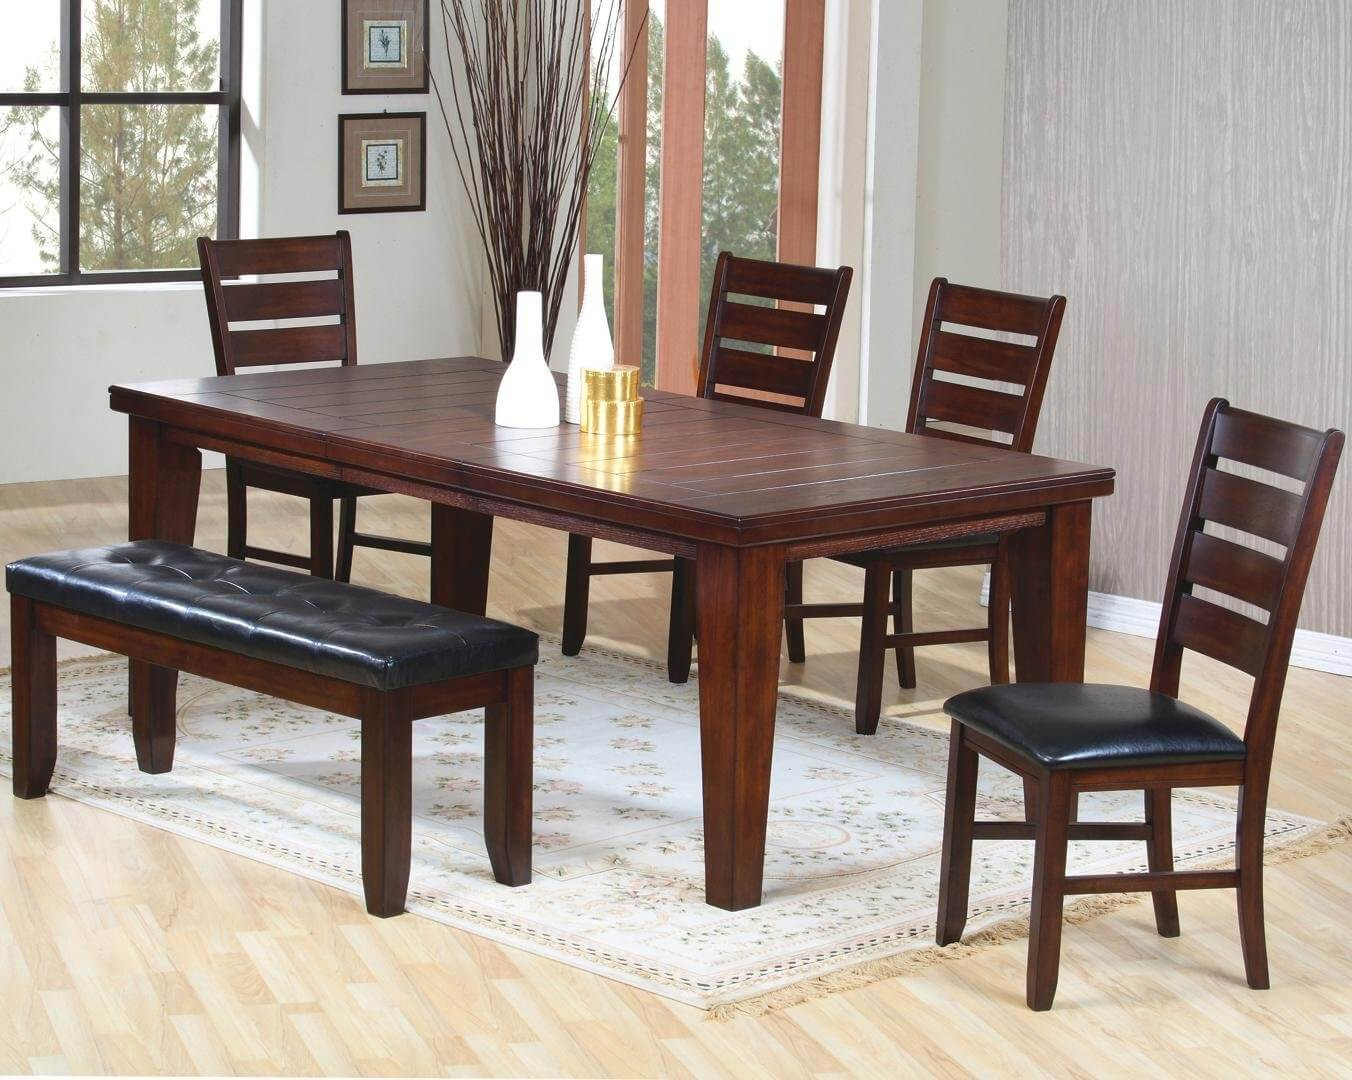 dining room table sets 26 dining room furniture sets with a bench TOADVDP